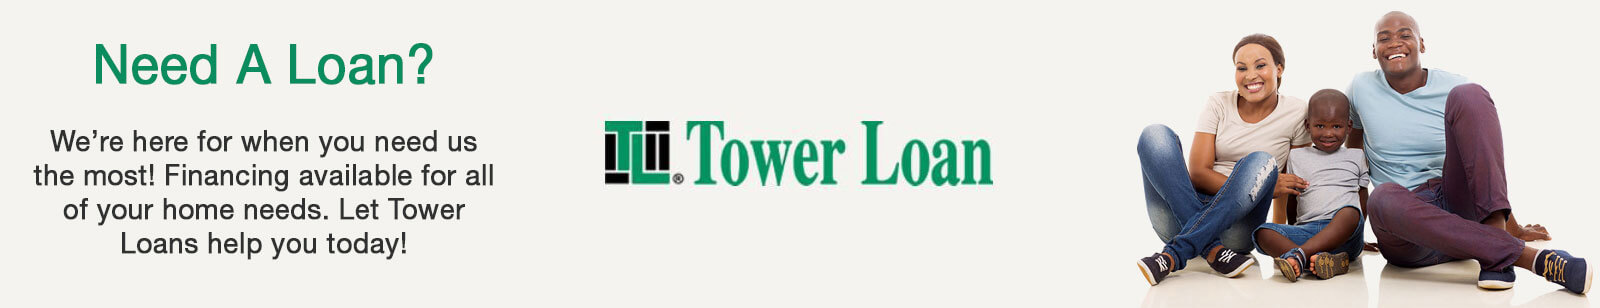 Tower Loan Finance